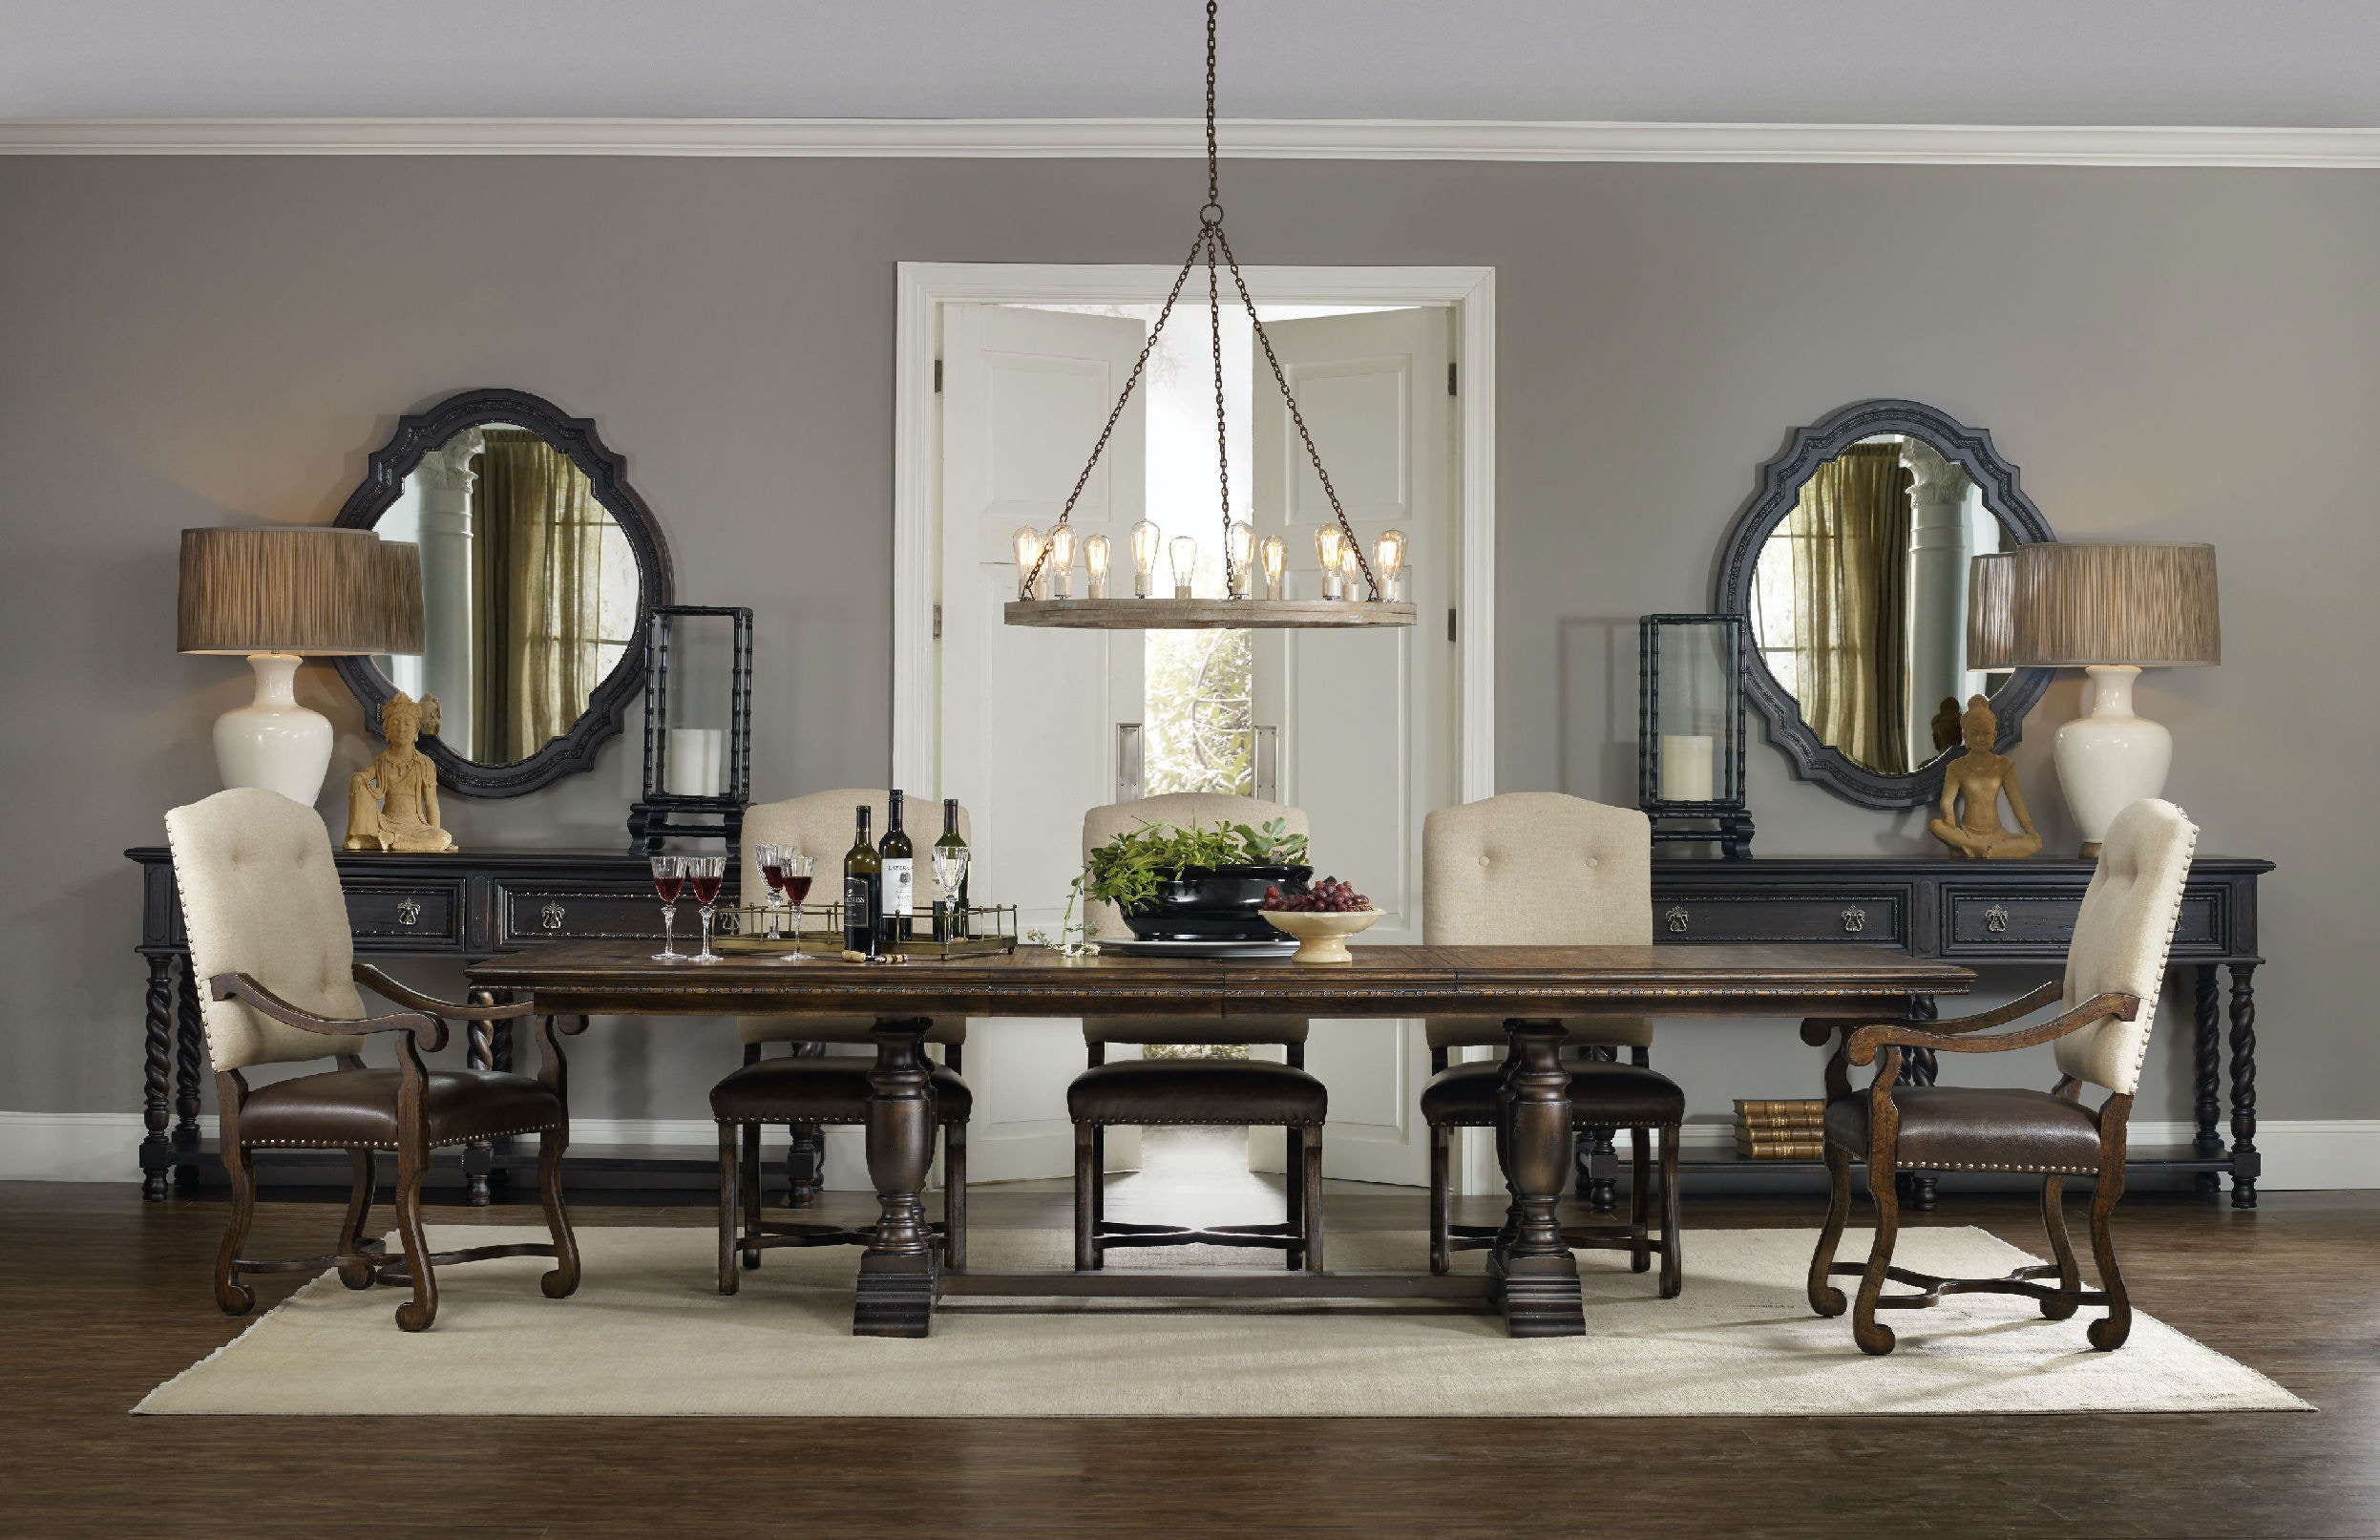 Hooker Furniture Dining Room Treviso Trestle Dining Table With Two - Trestle dining room table